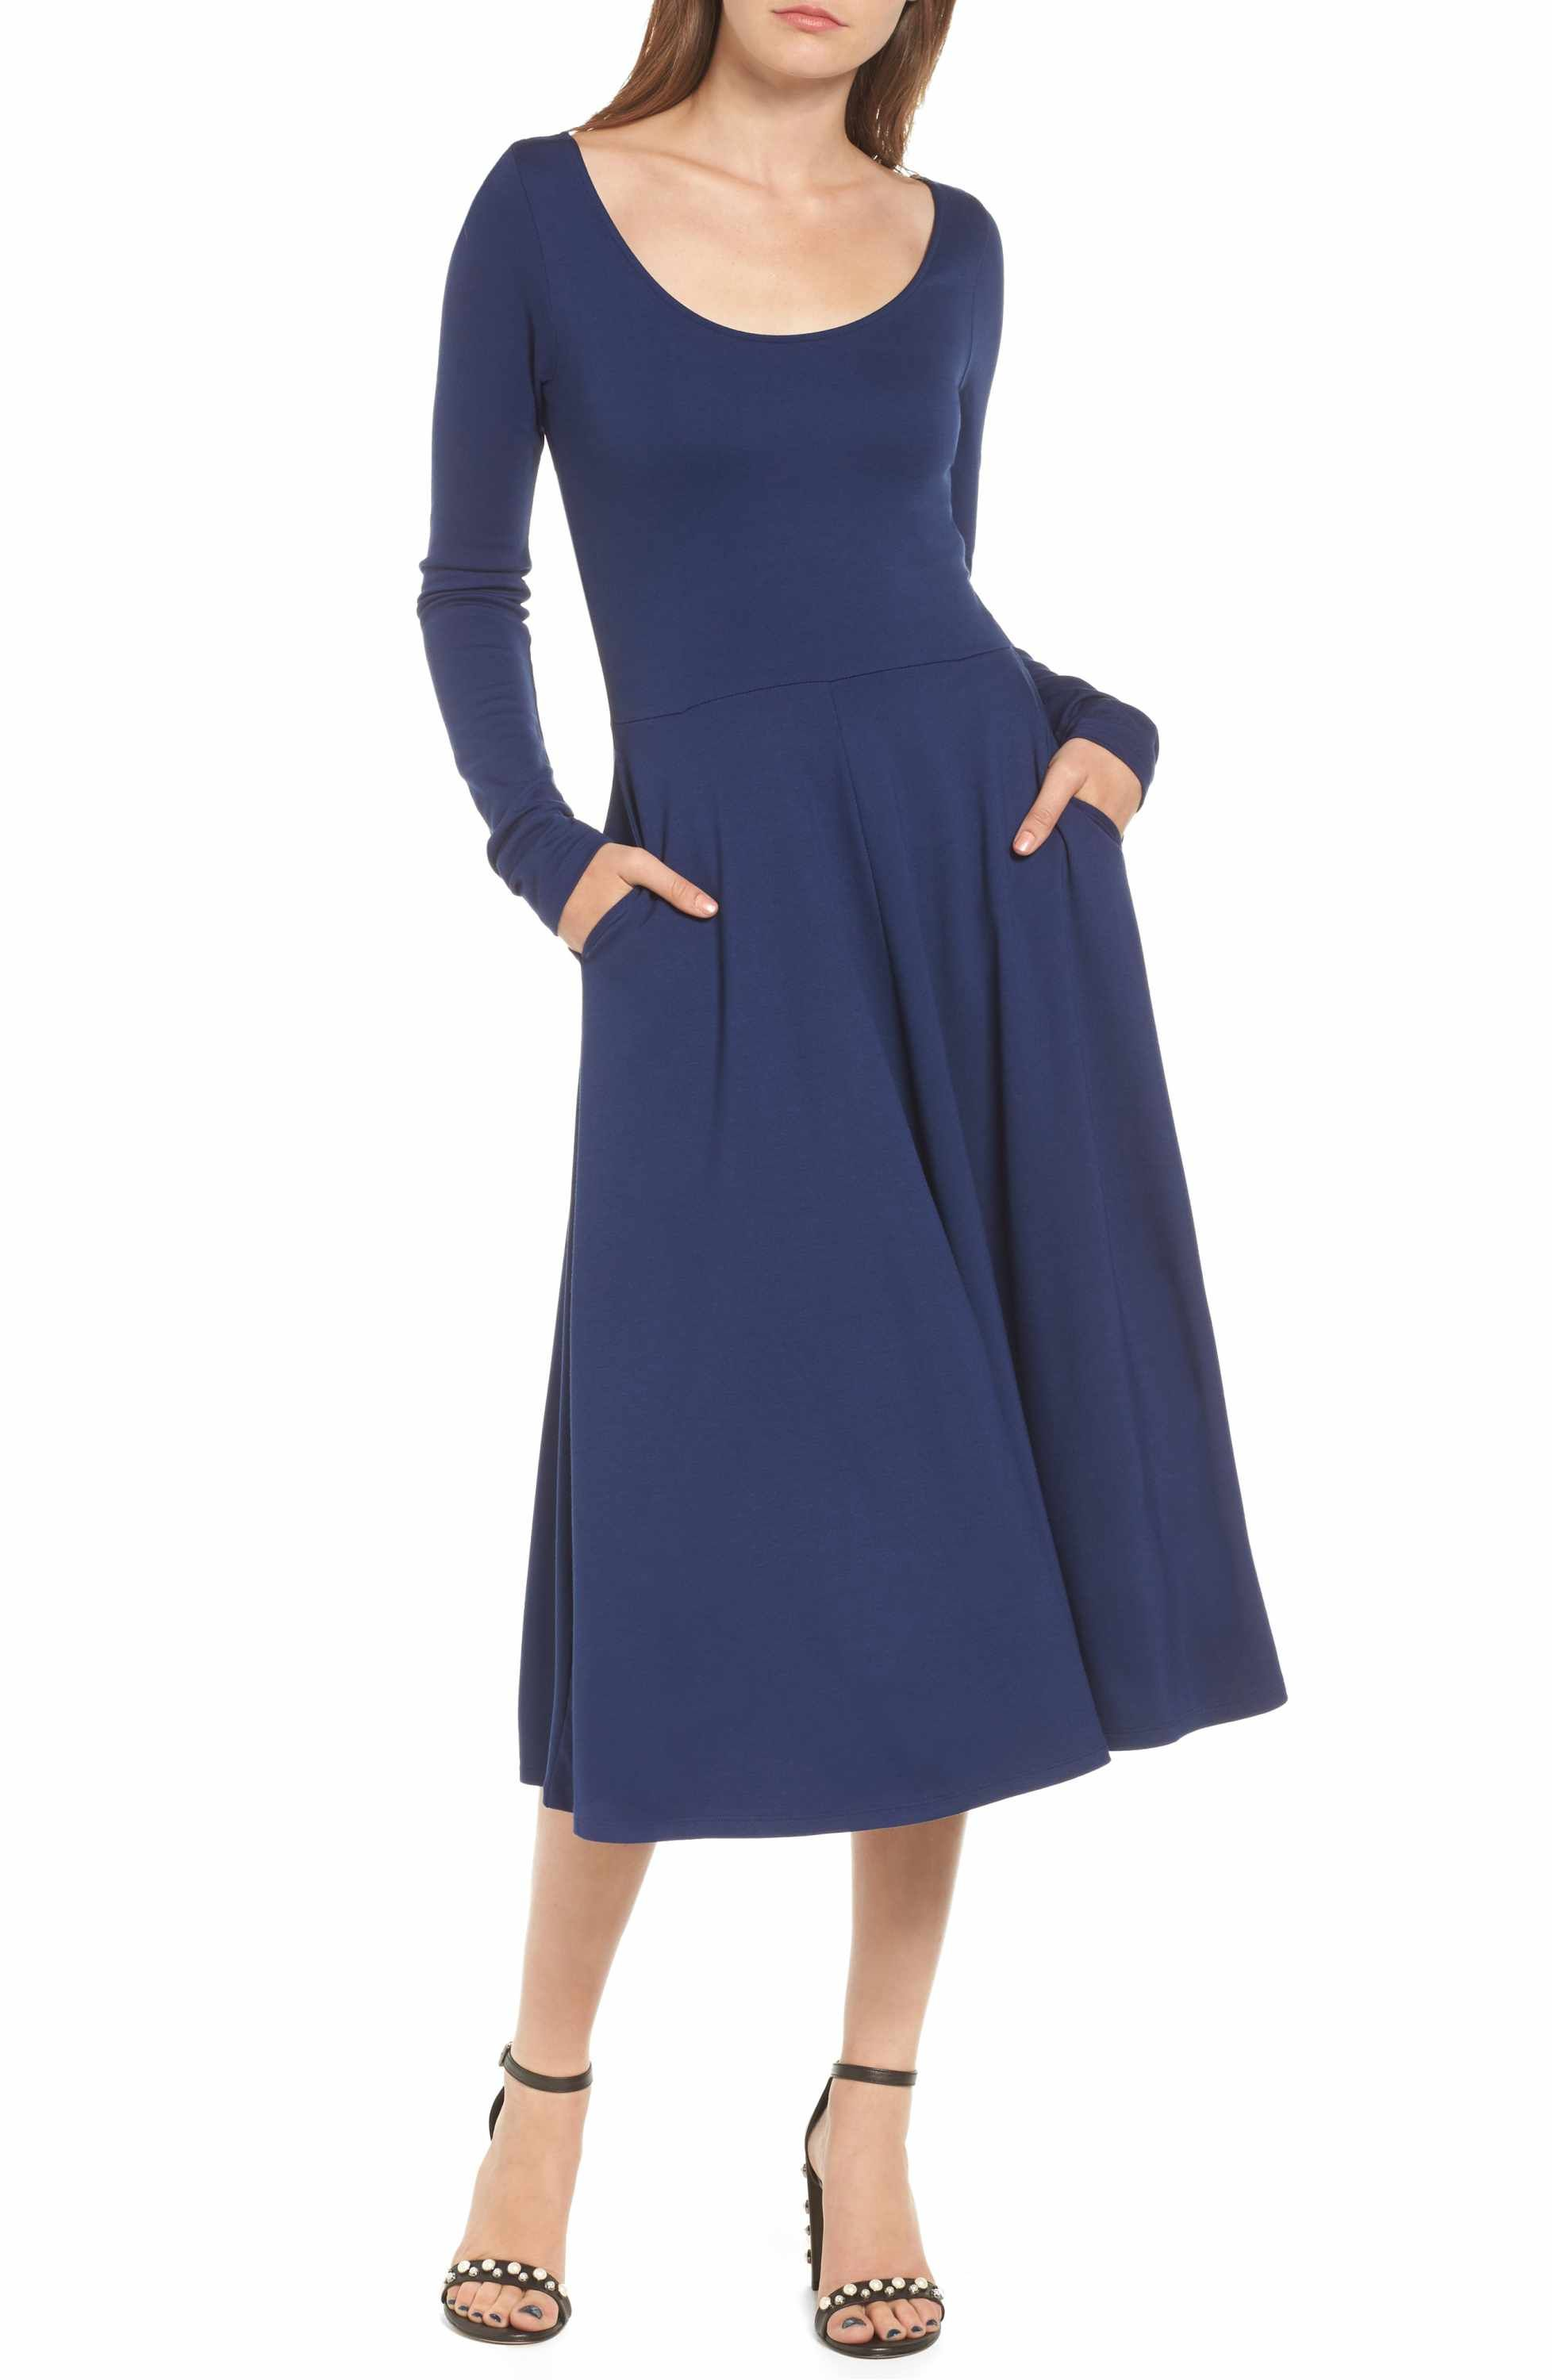 Main image leith long sleeve midi dress what to wear pinterest